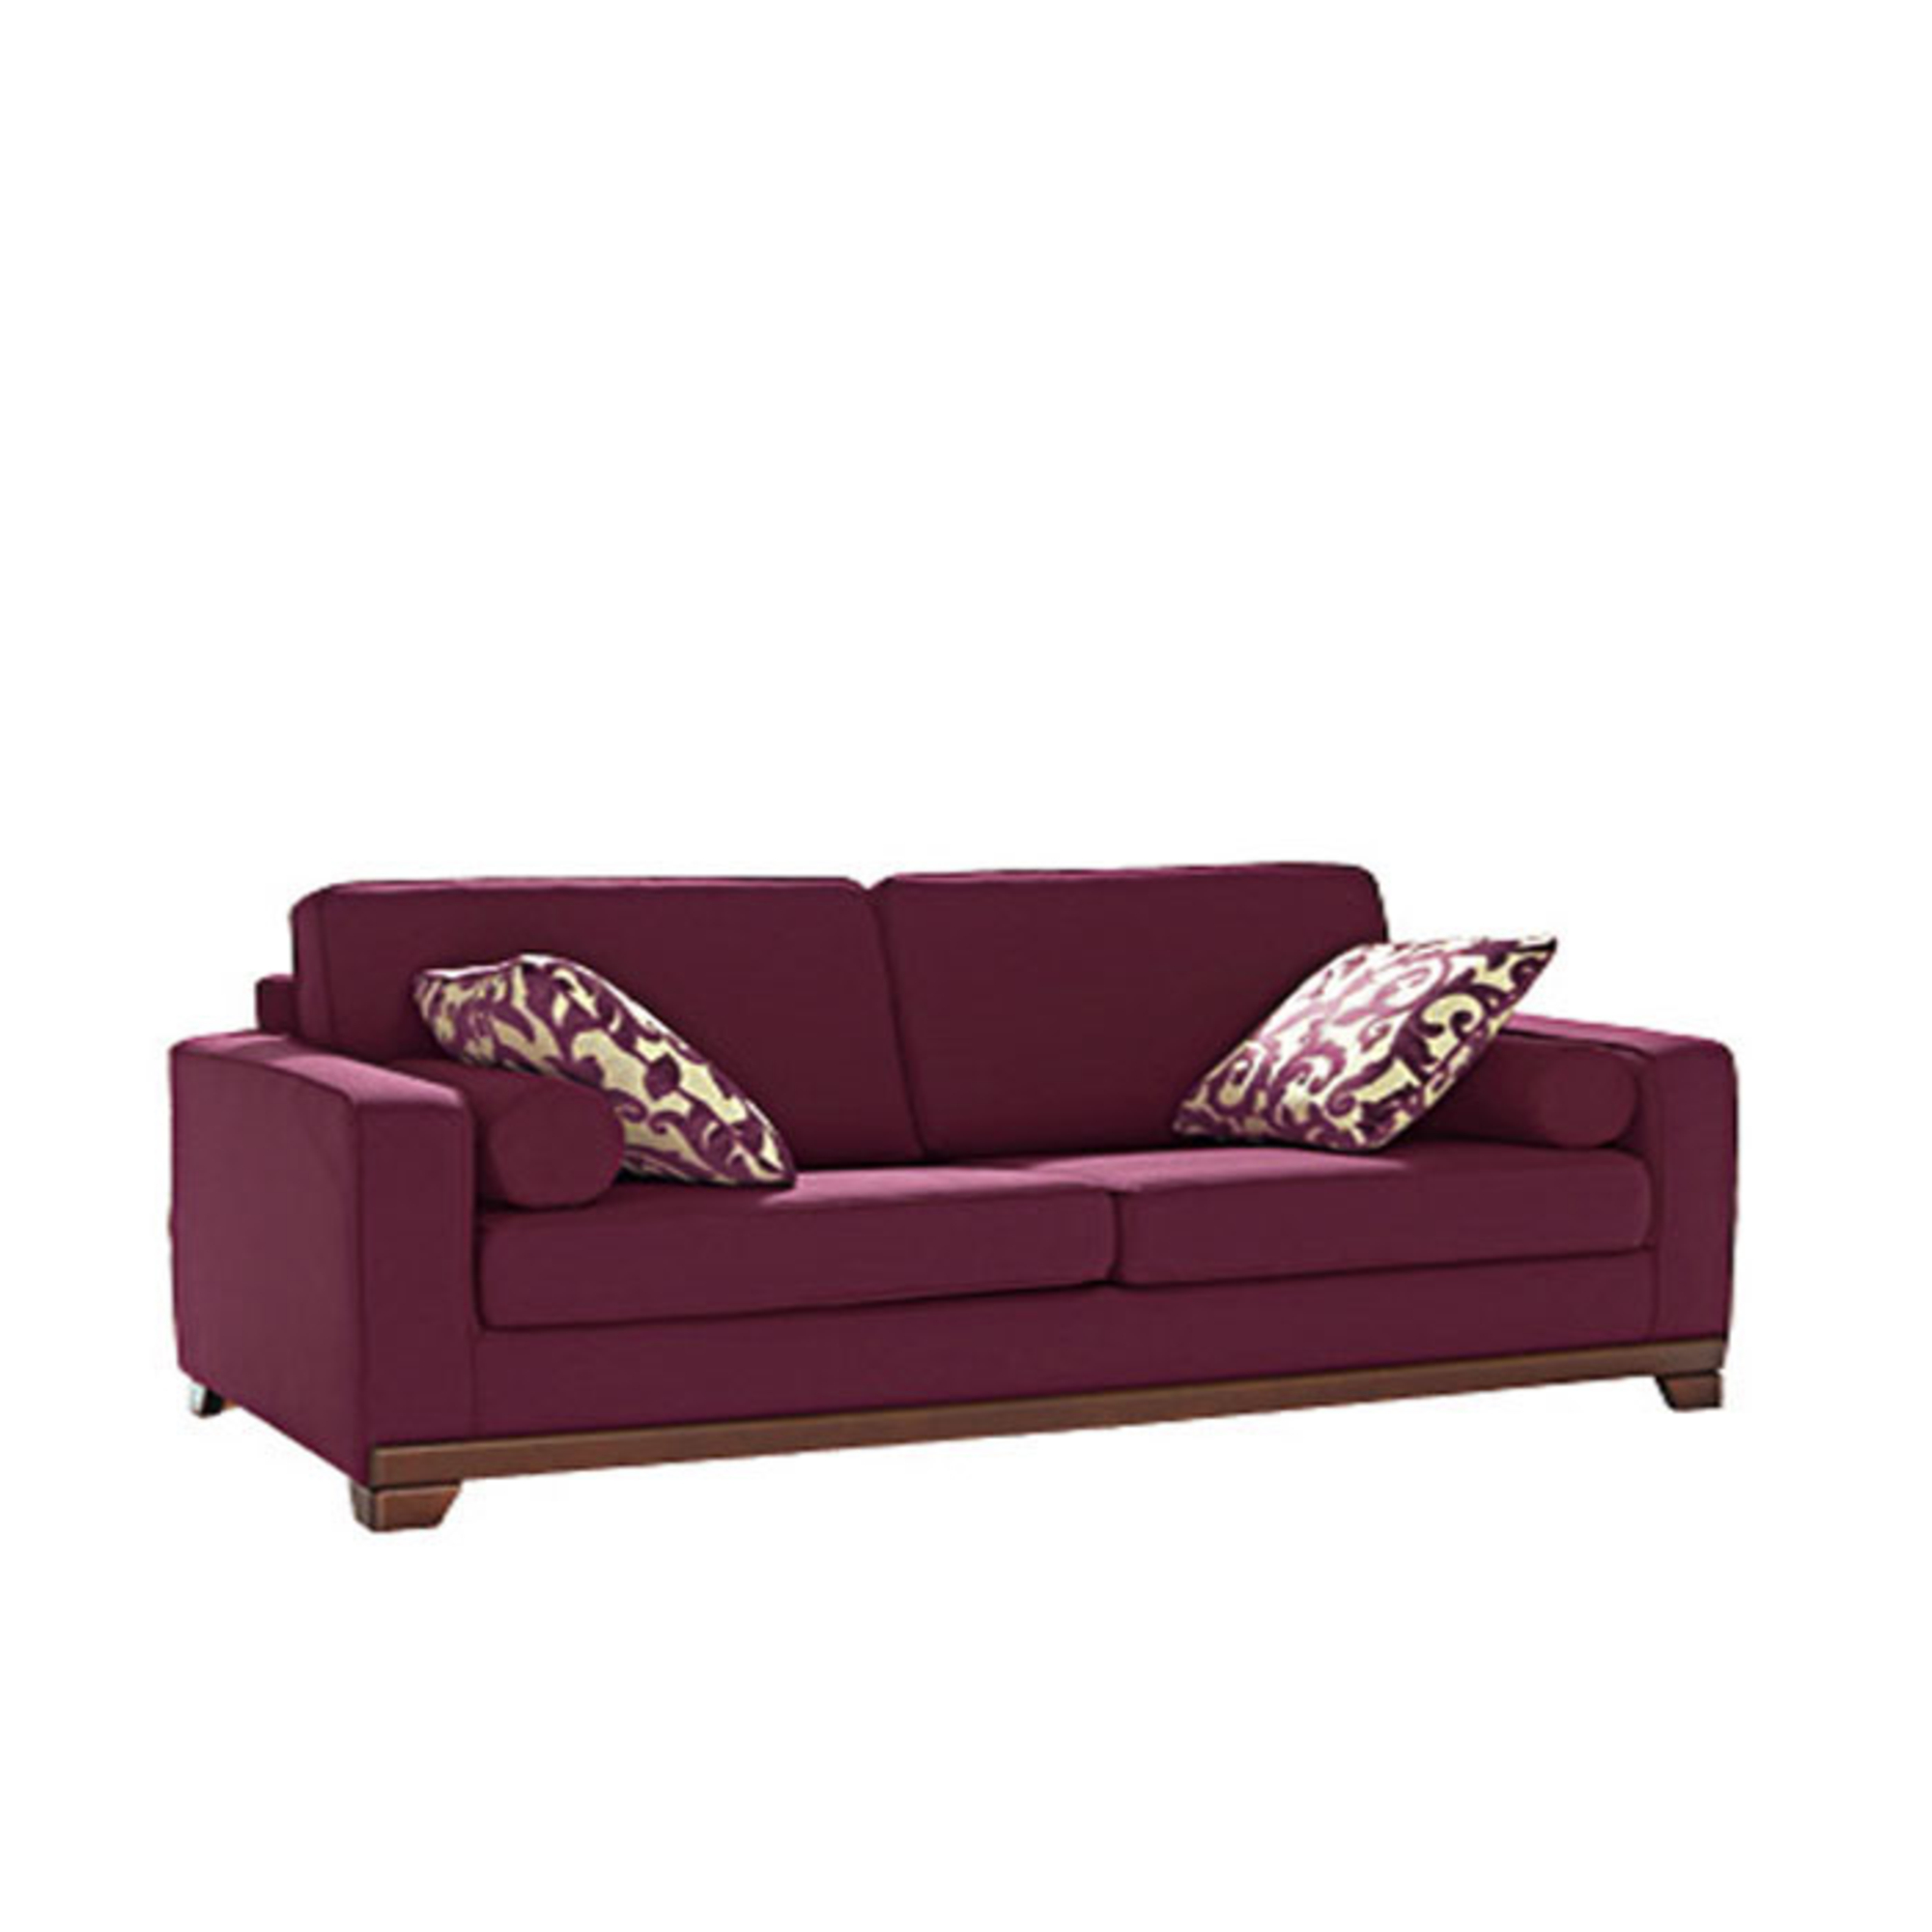 Canap d 39 angle couleur aubergine for Canape d angle sophia